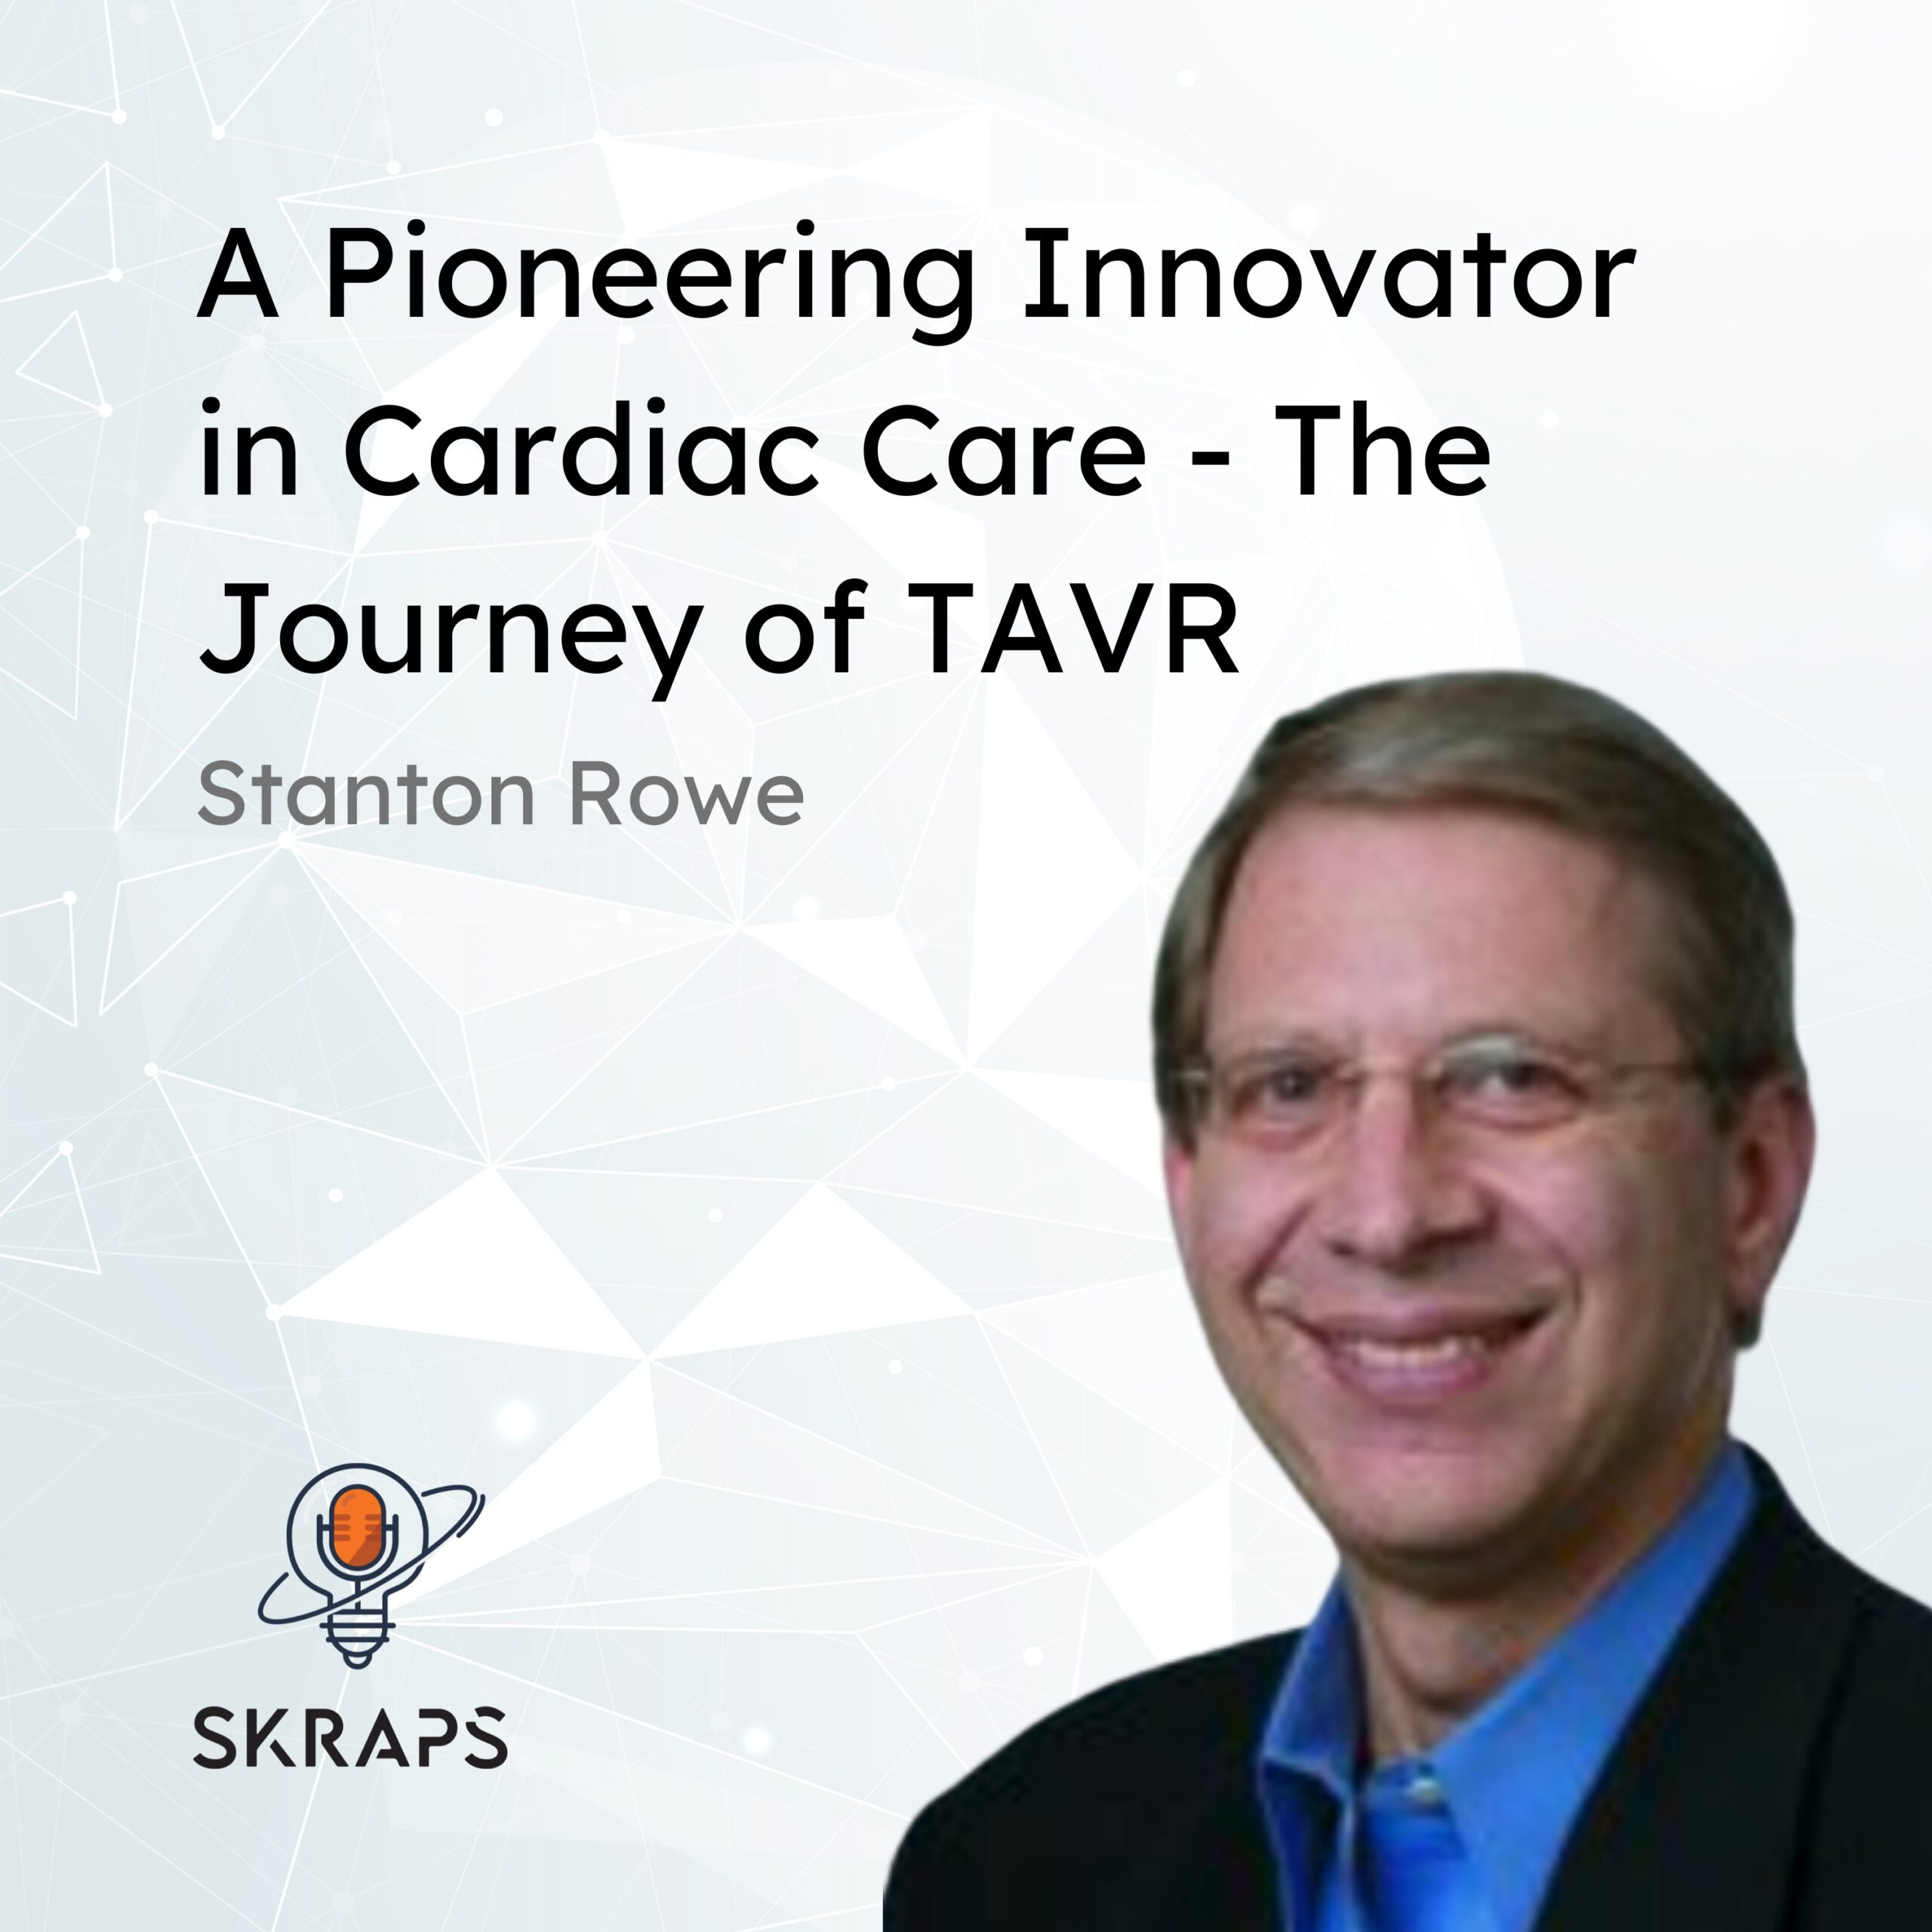 Pioneering the first transcatheter valve, Travails of an Innovator(s), Bringing together coronary stents and TAVR